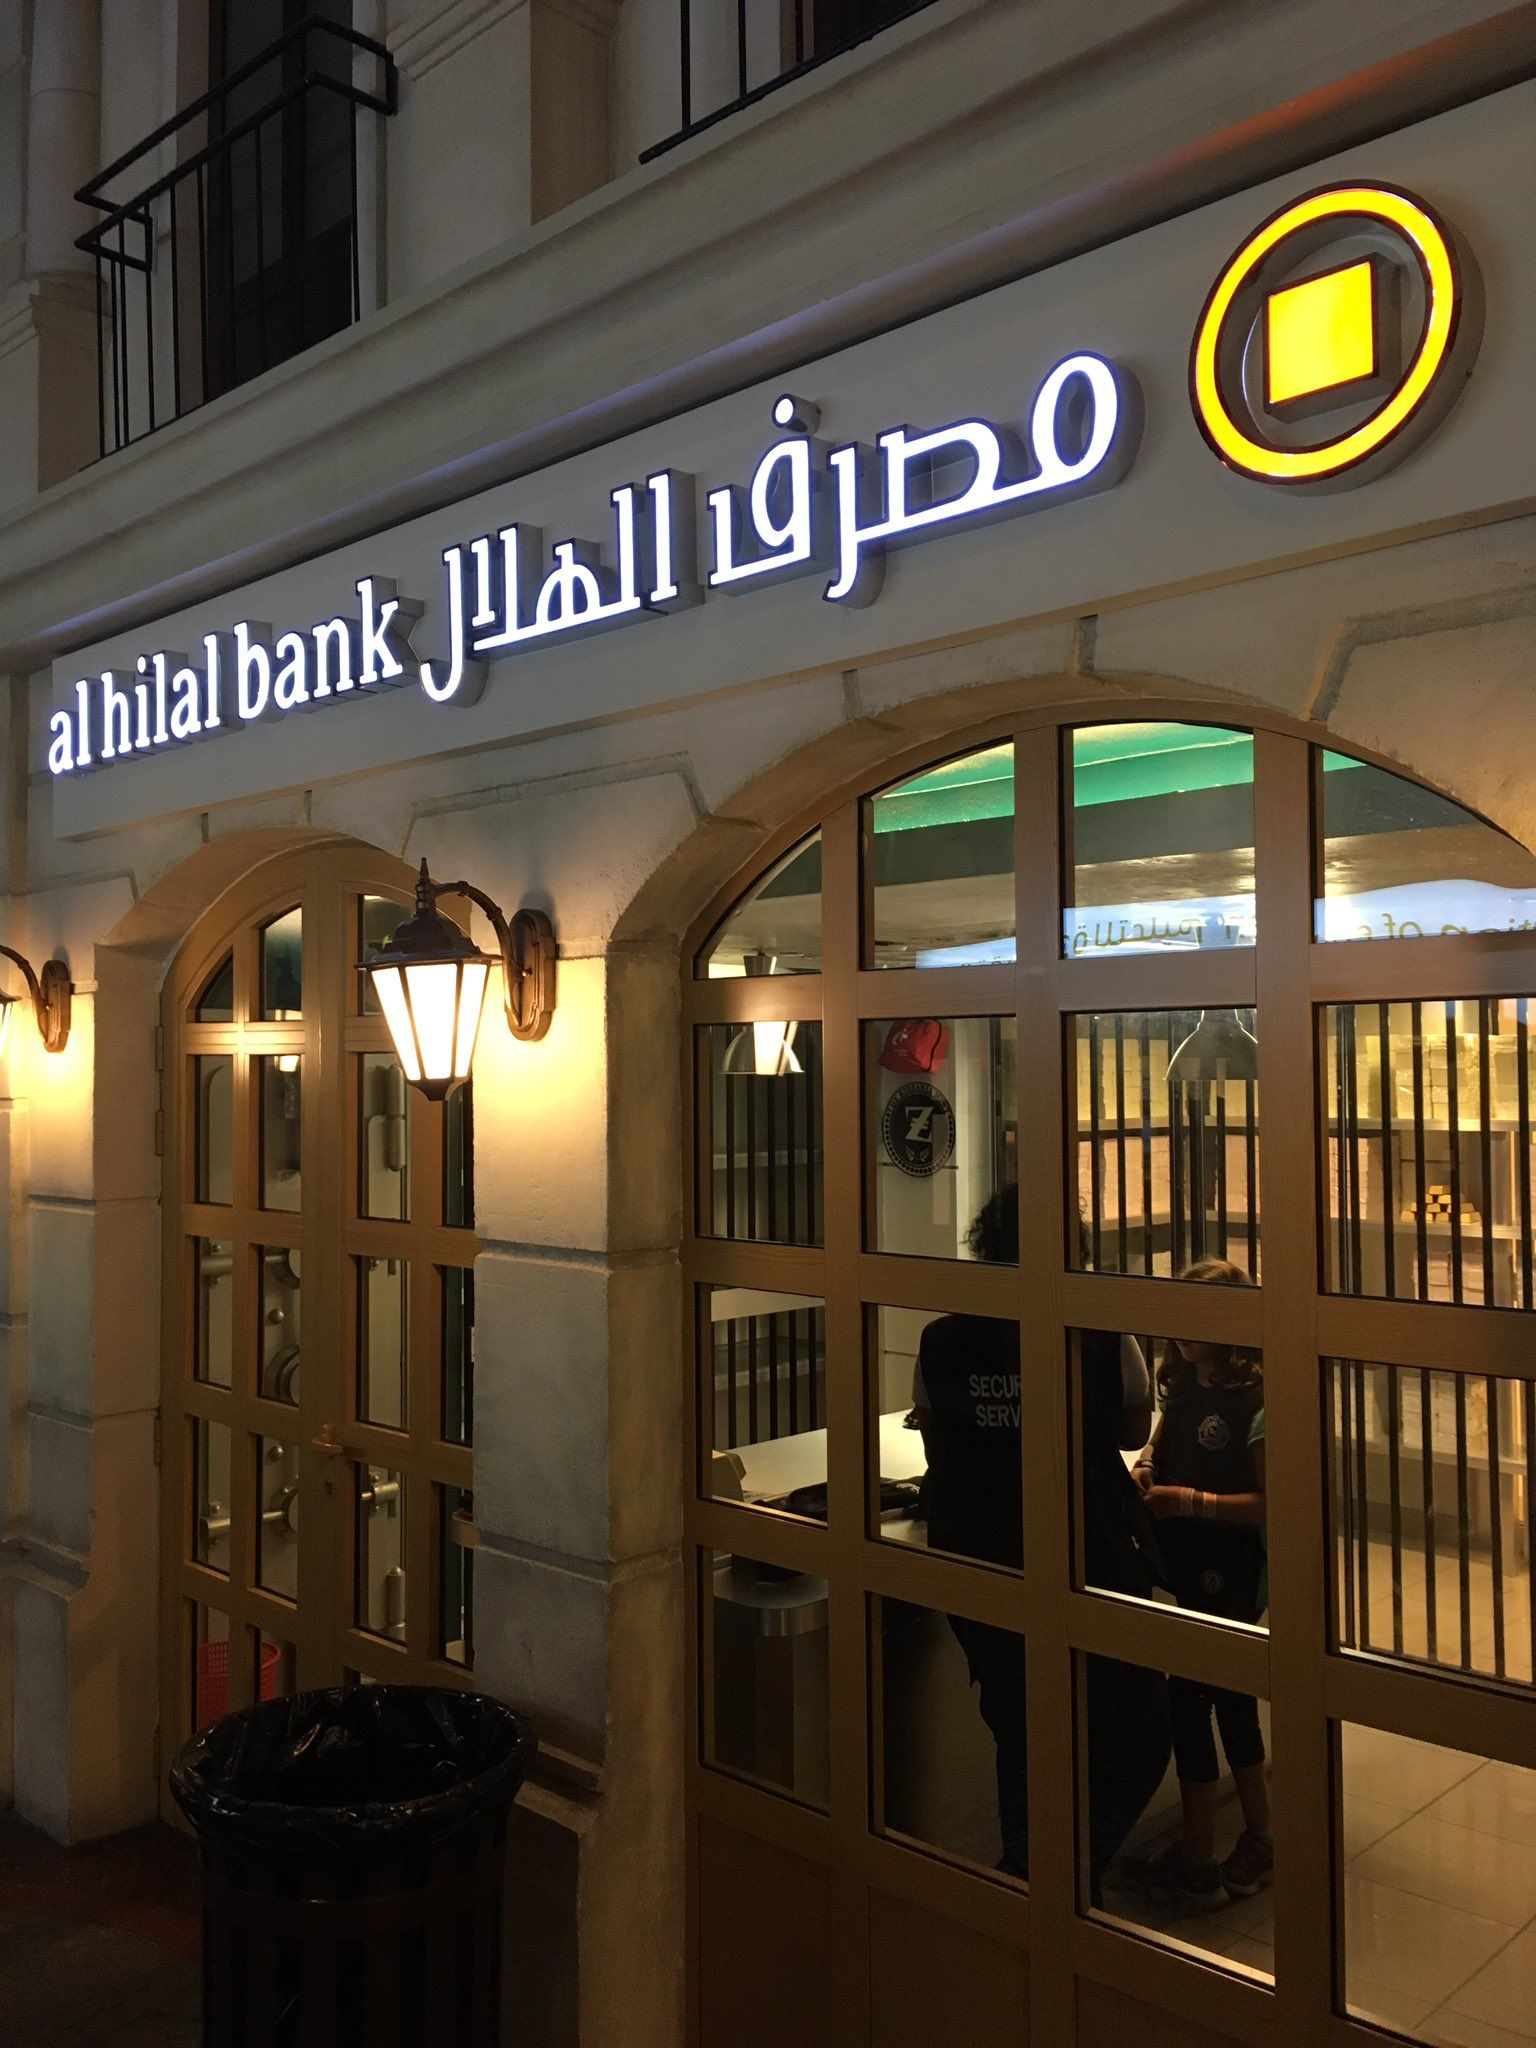 Kristen has chosen to work at the @KidZaniaDubai bank vault learning how to detect counterfeit money and store cash https://t.co/H3JuCAYb5C